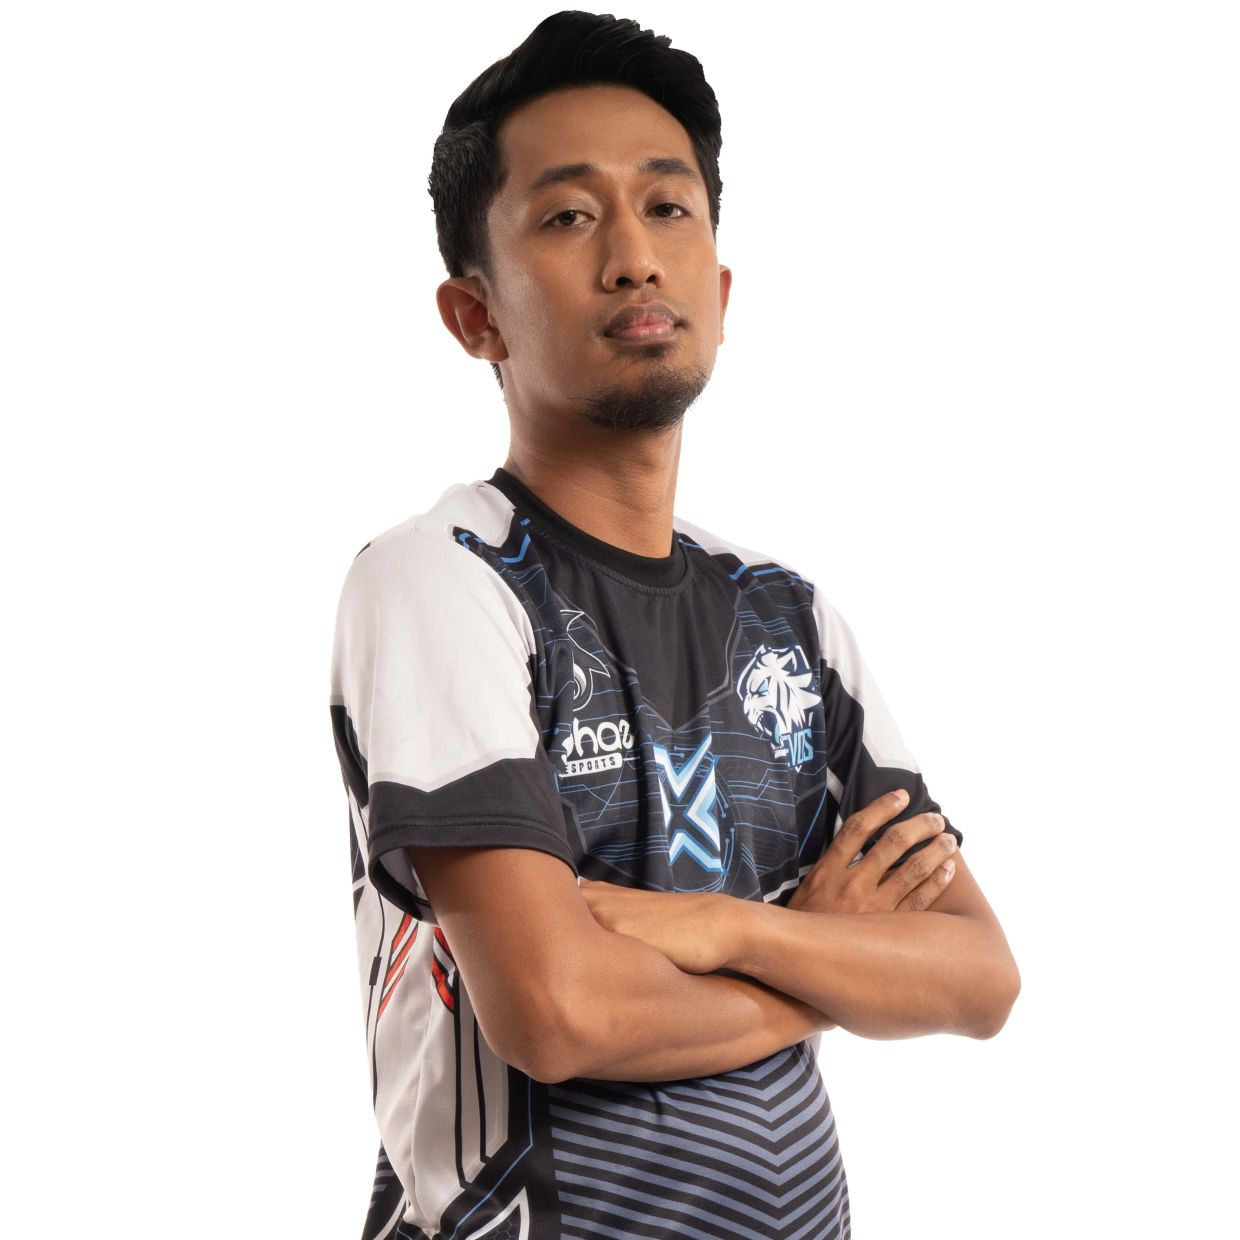 Muhammad Fadhil said fostering camaraderie is also crucial so the players can support each other during challenging moments. — Suhaz Esports